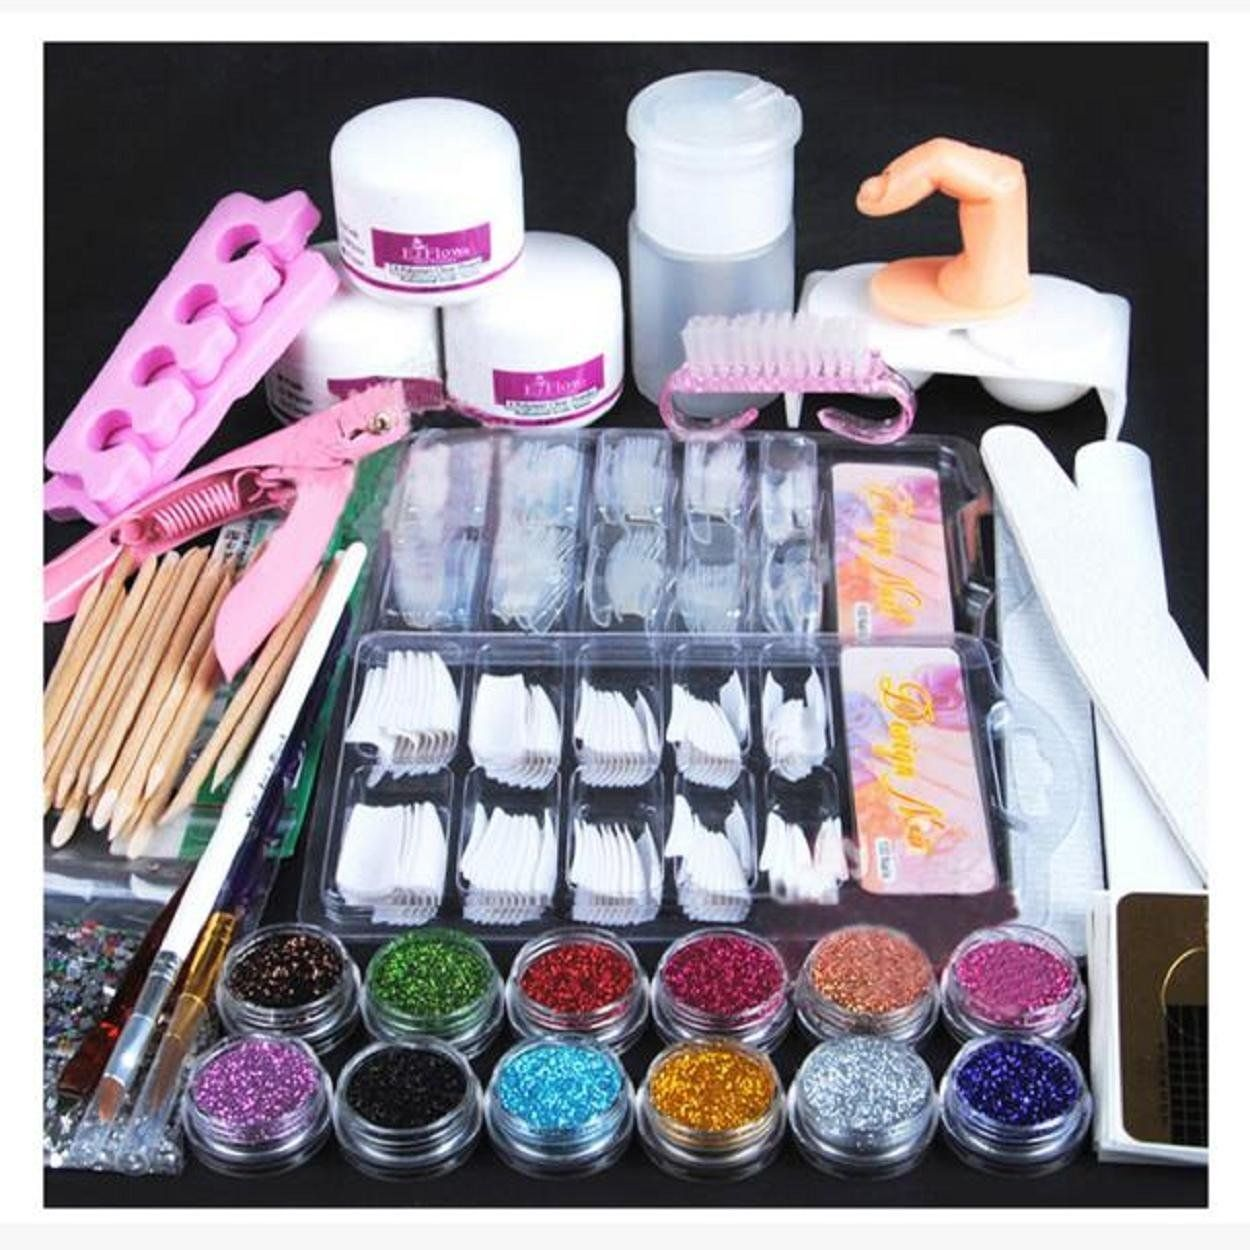 Kingfansion Acrylic Powder Glitter Nail Brush False Finger Pump Nail Art Tools Kit Set More Info Coul Acrylic Nail Kit Nail Art Tool Kit Powder Glitter Nails